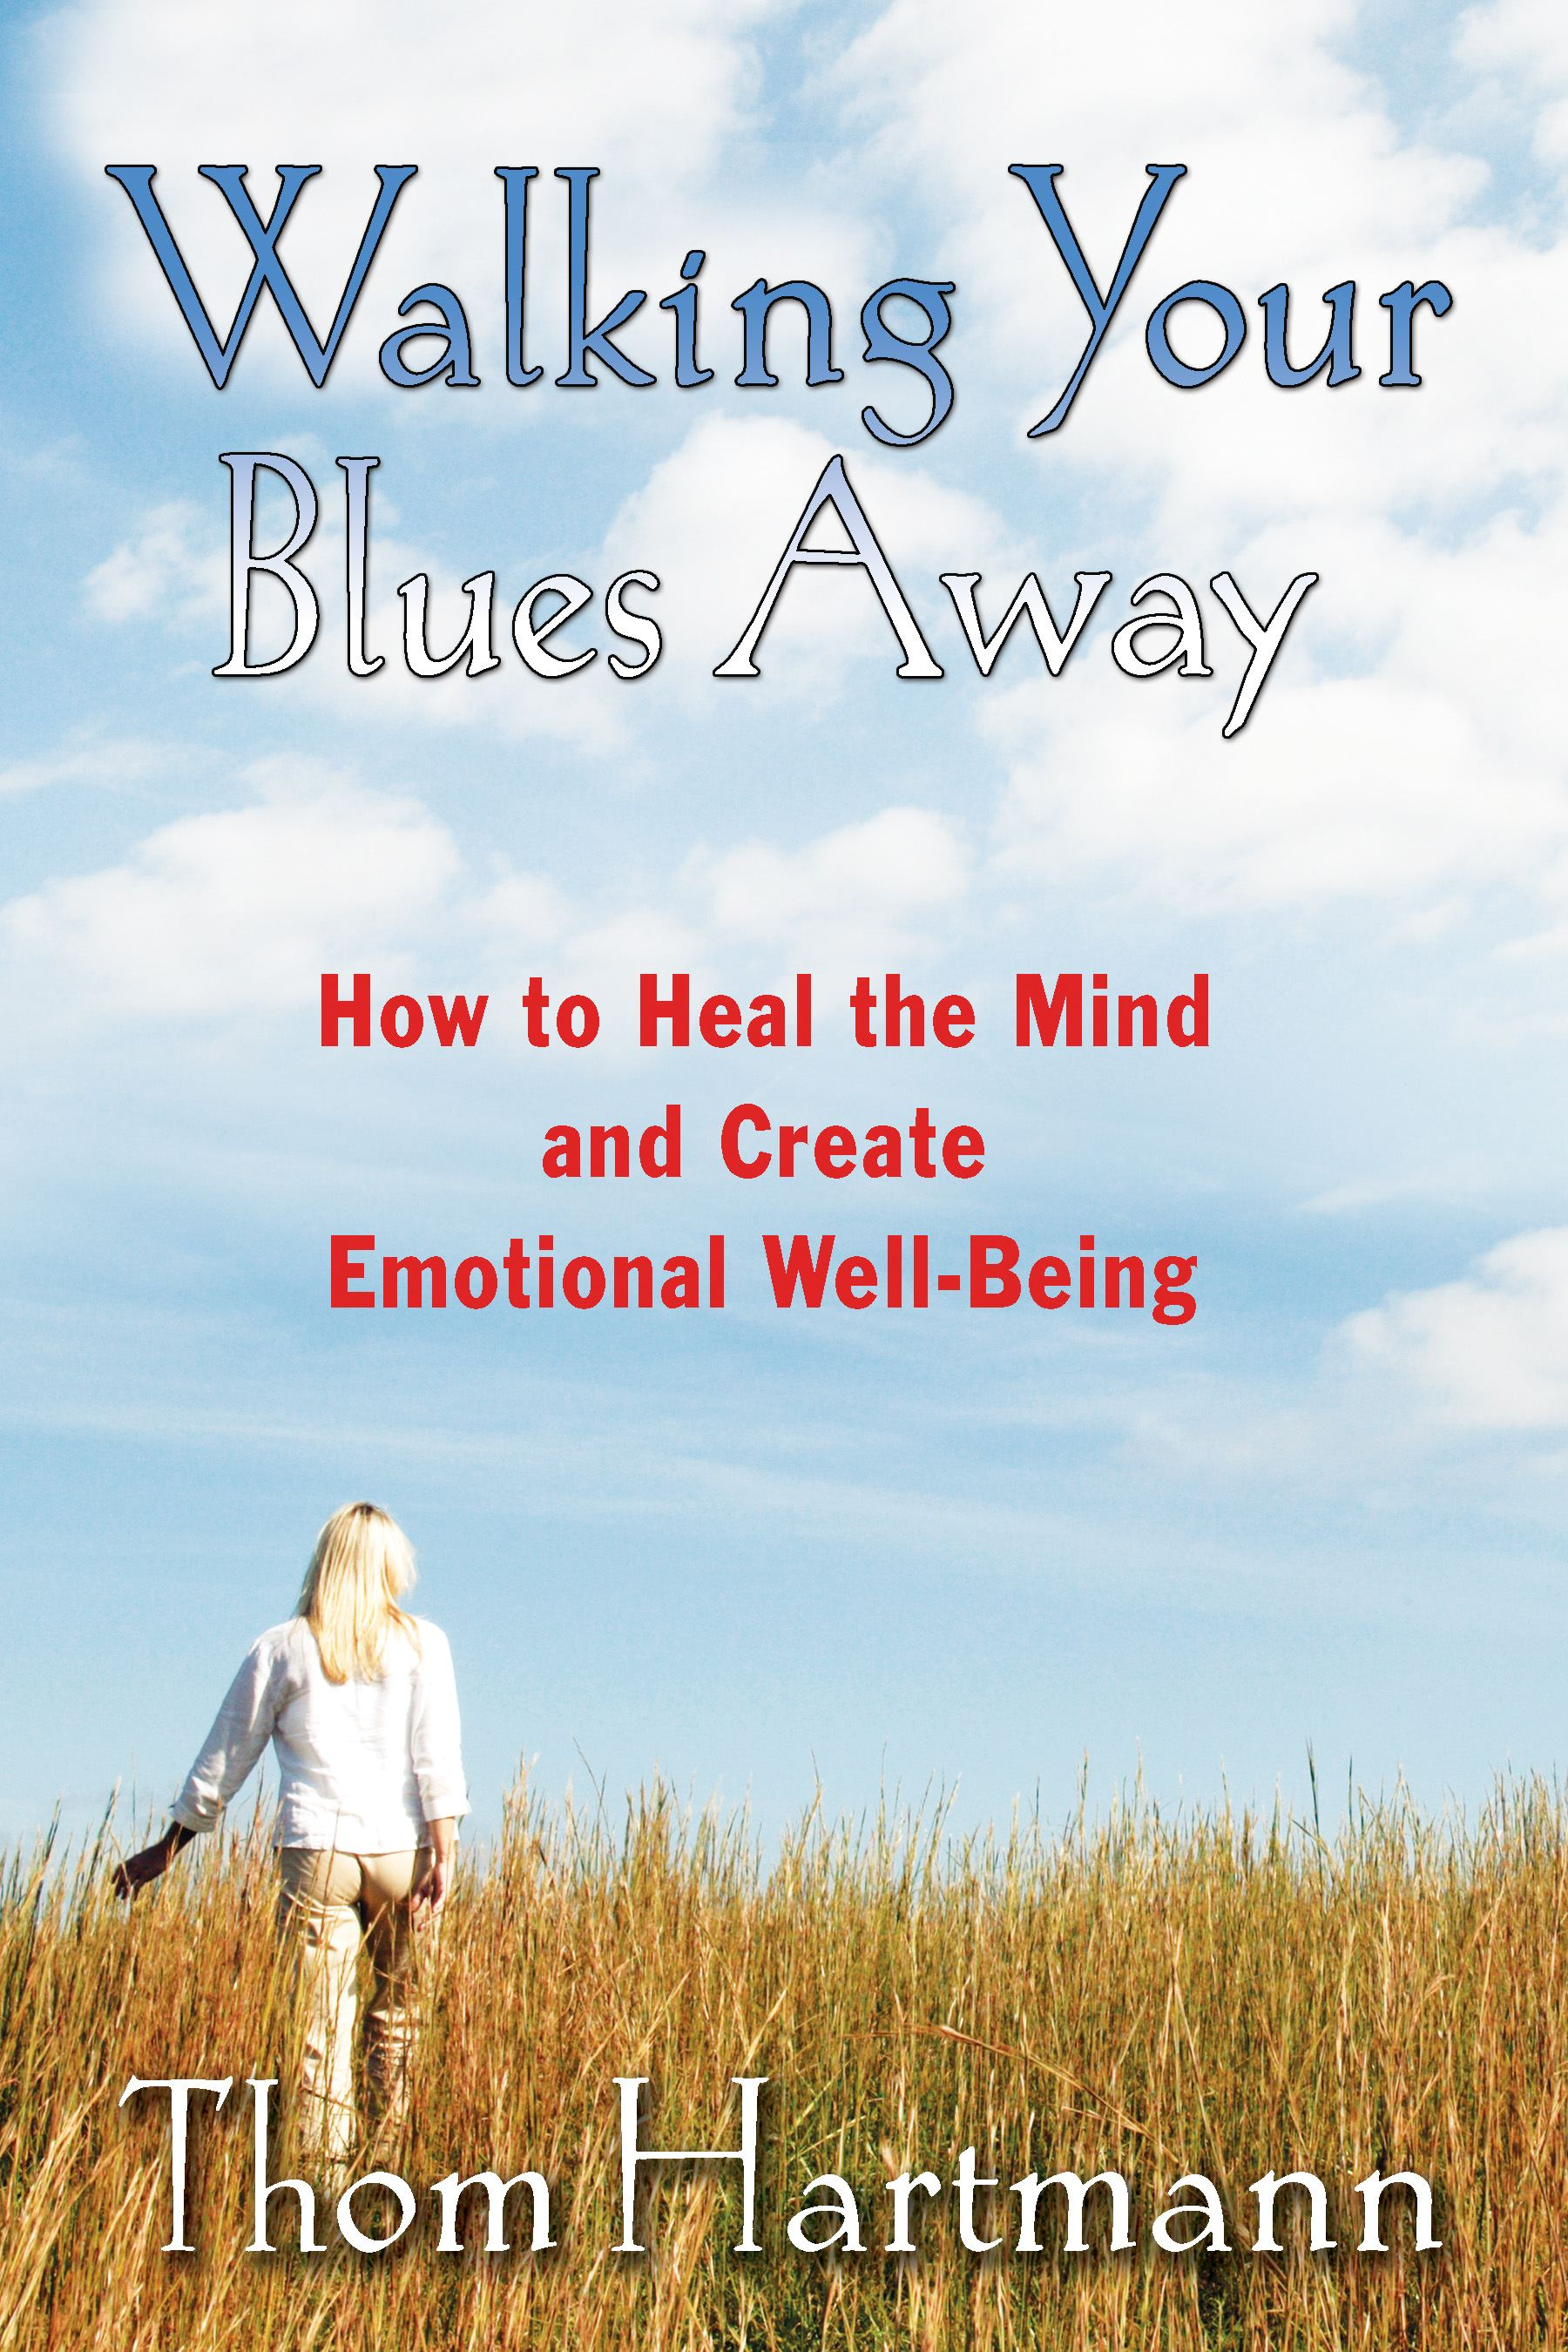 Walking your blues away 9781594771446 hr